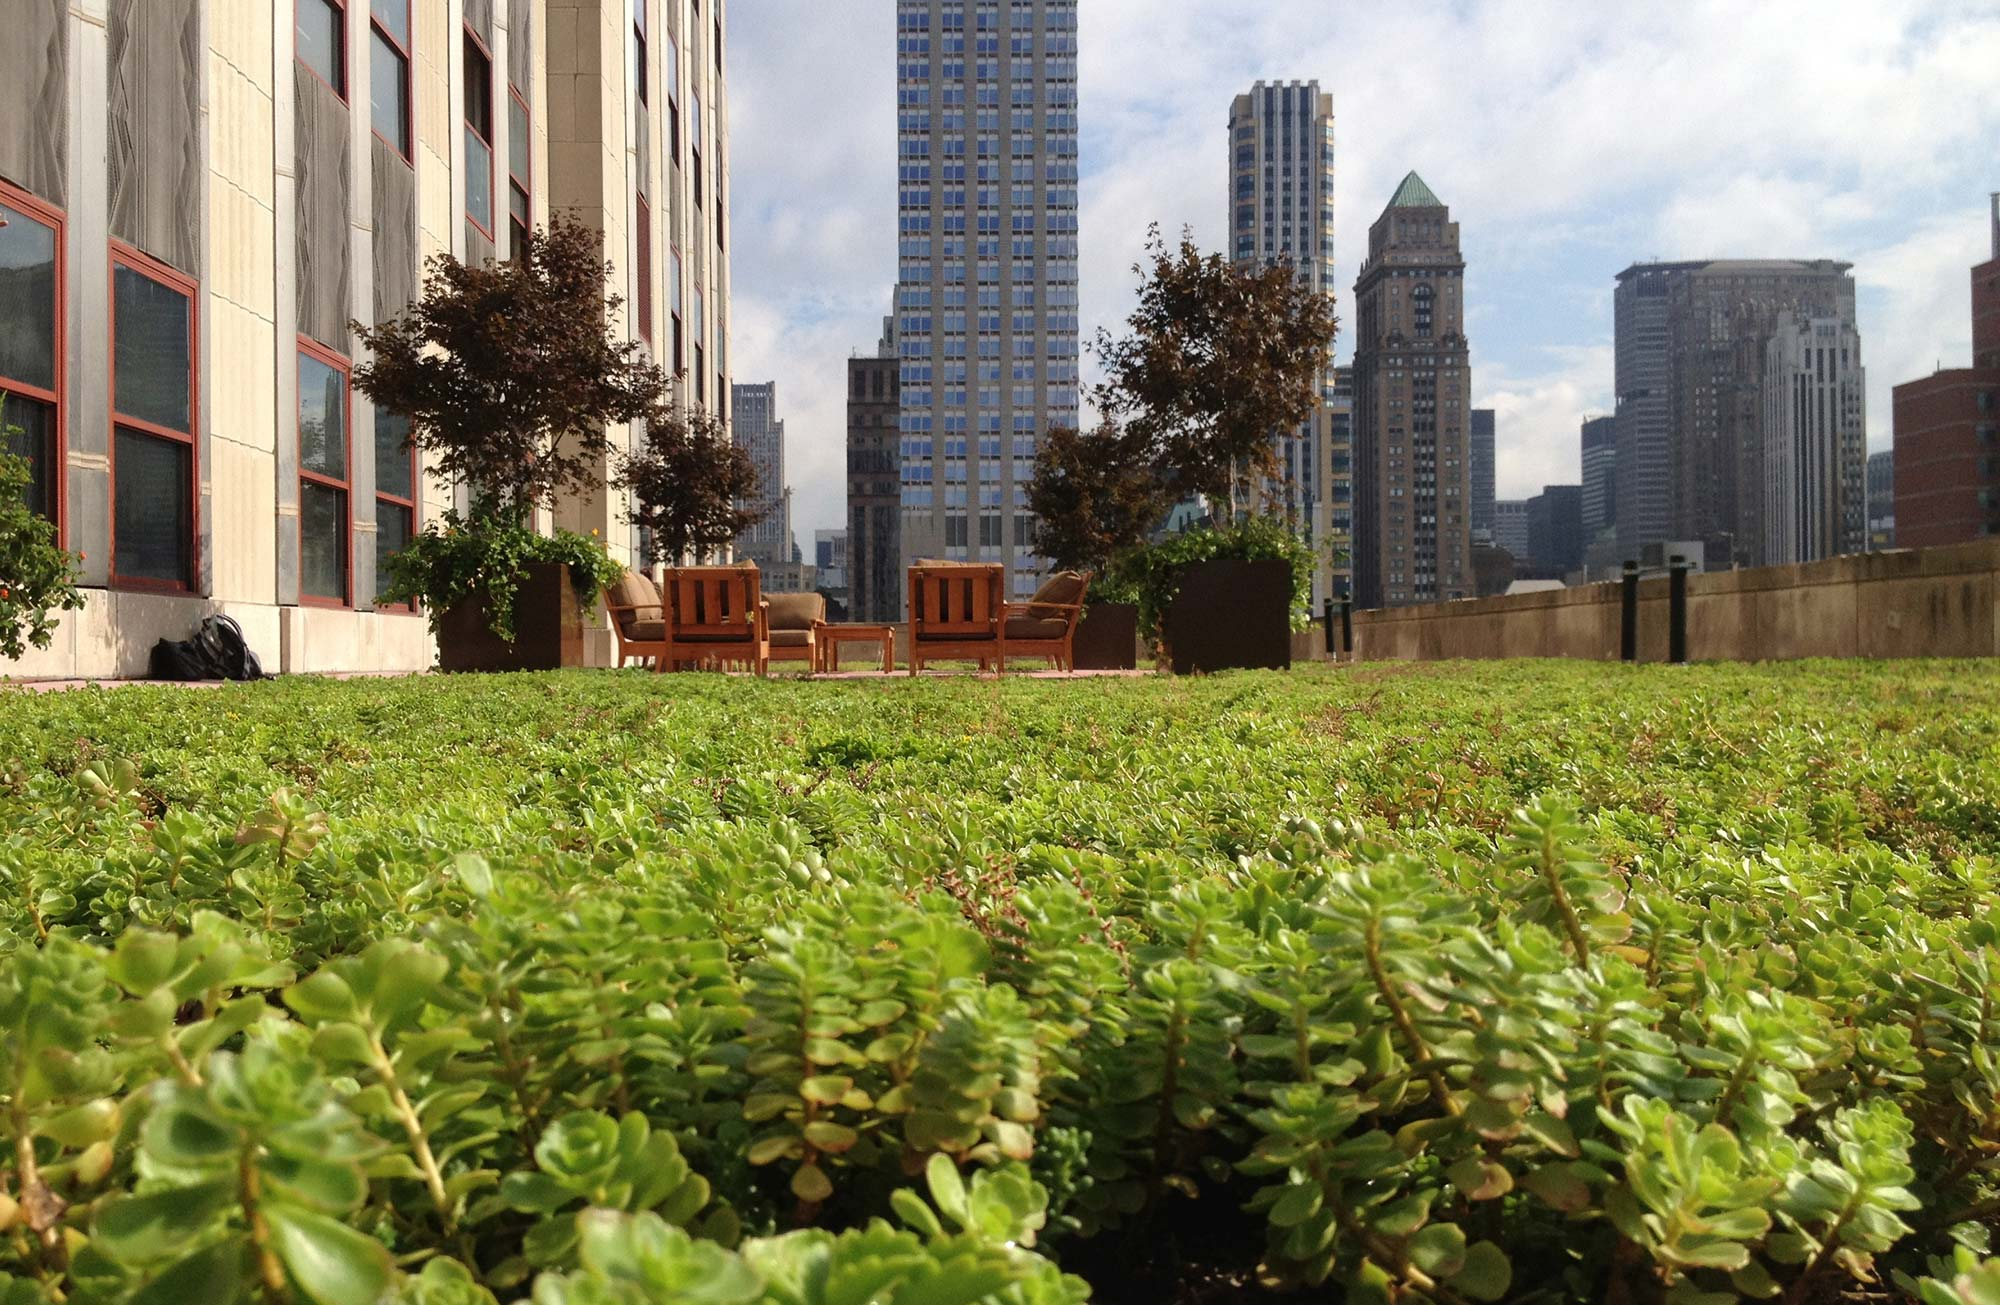 Testing the wind performance of vegetated roofs